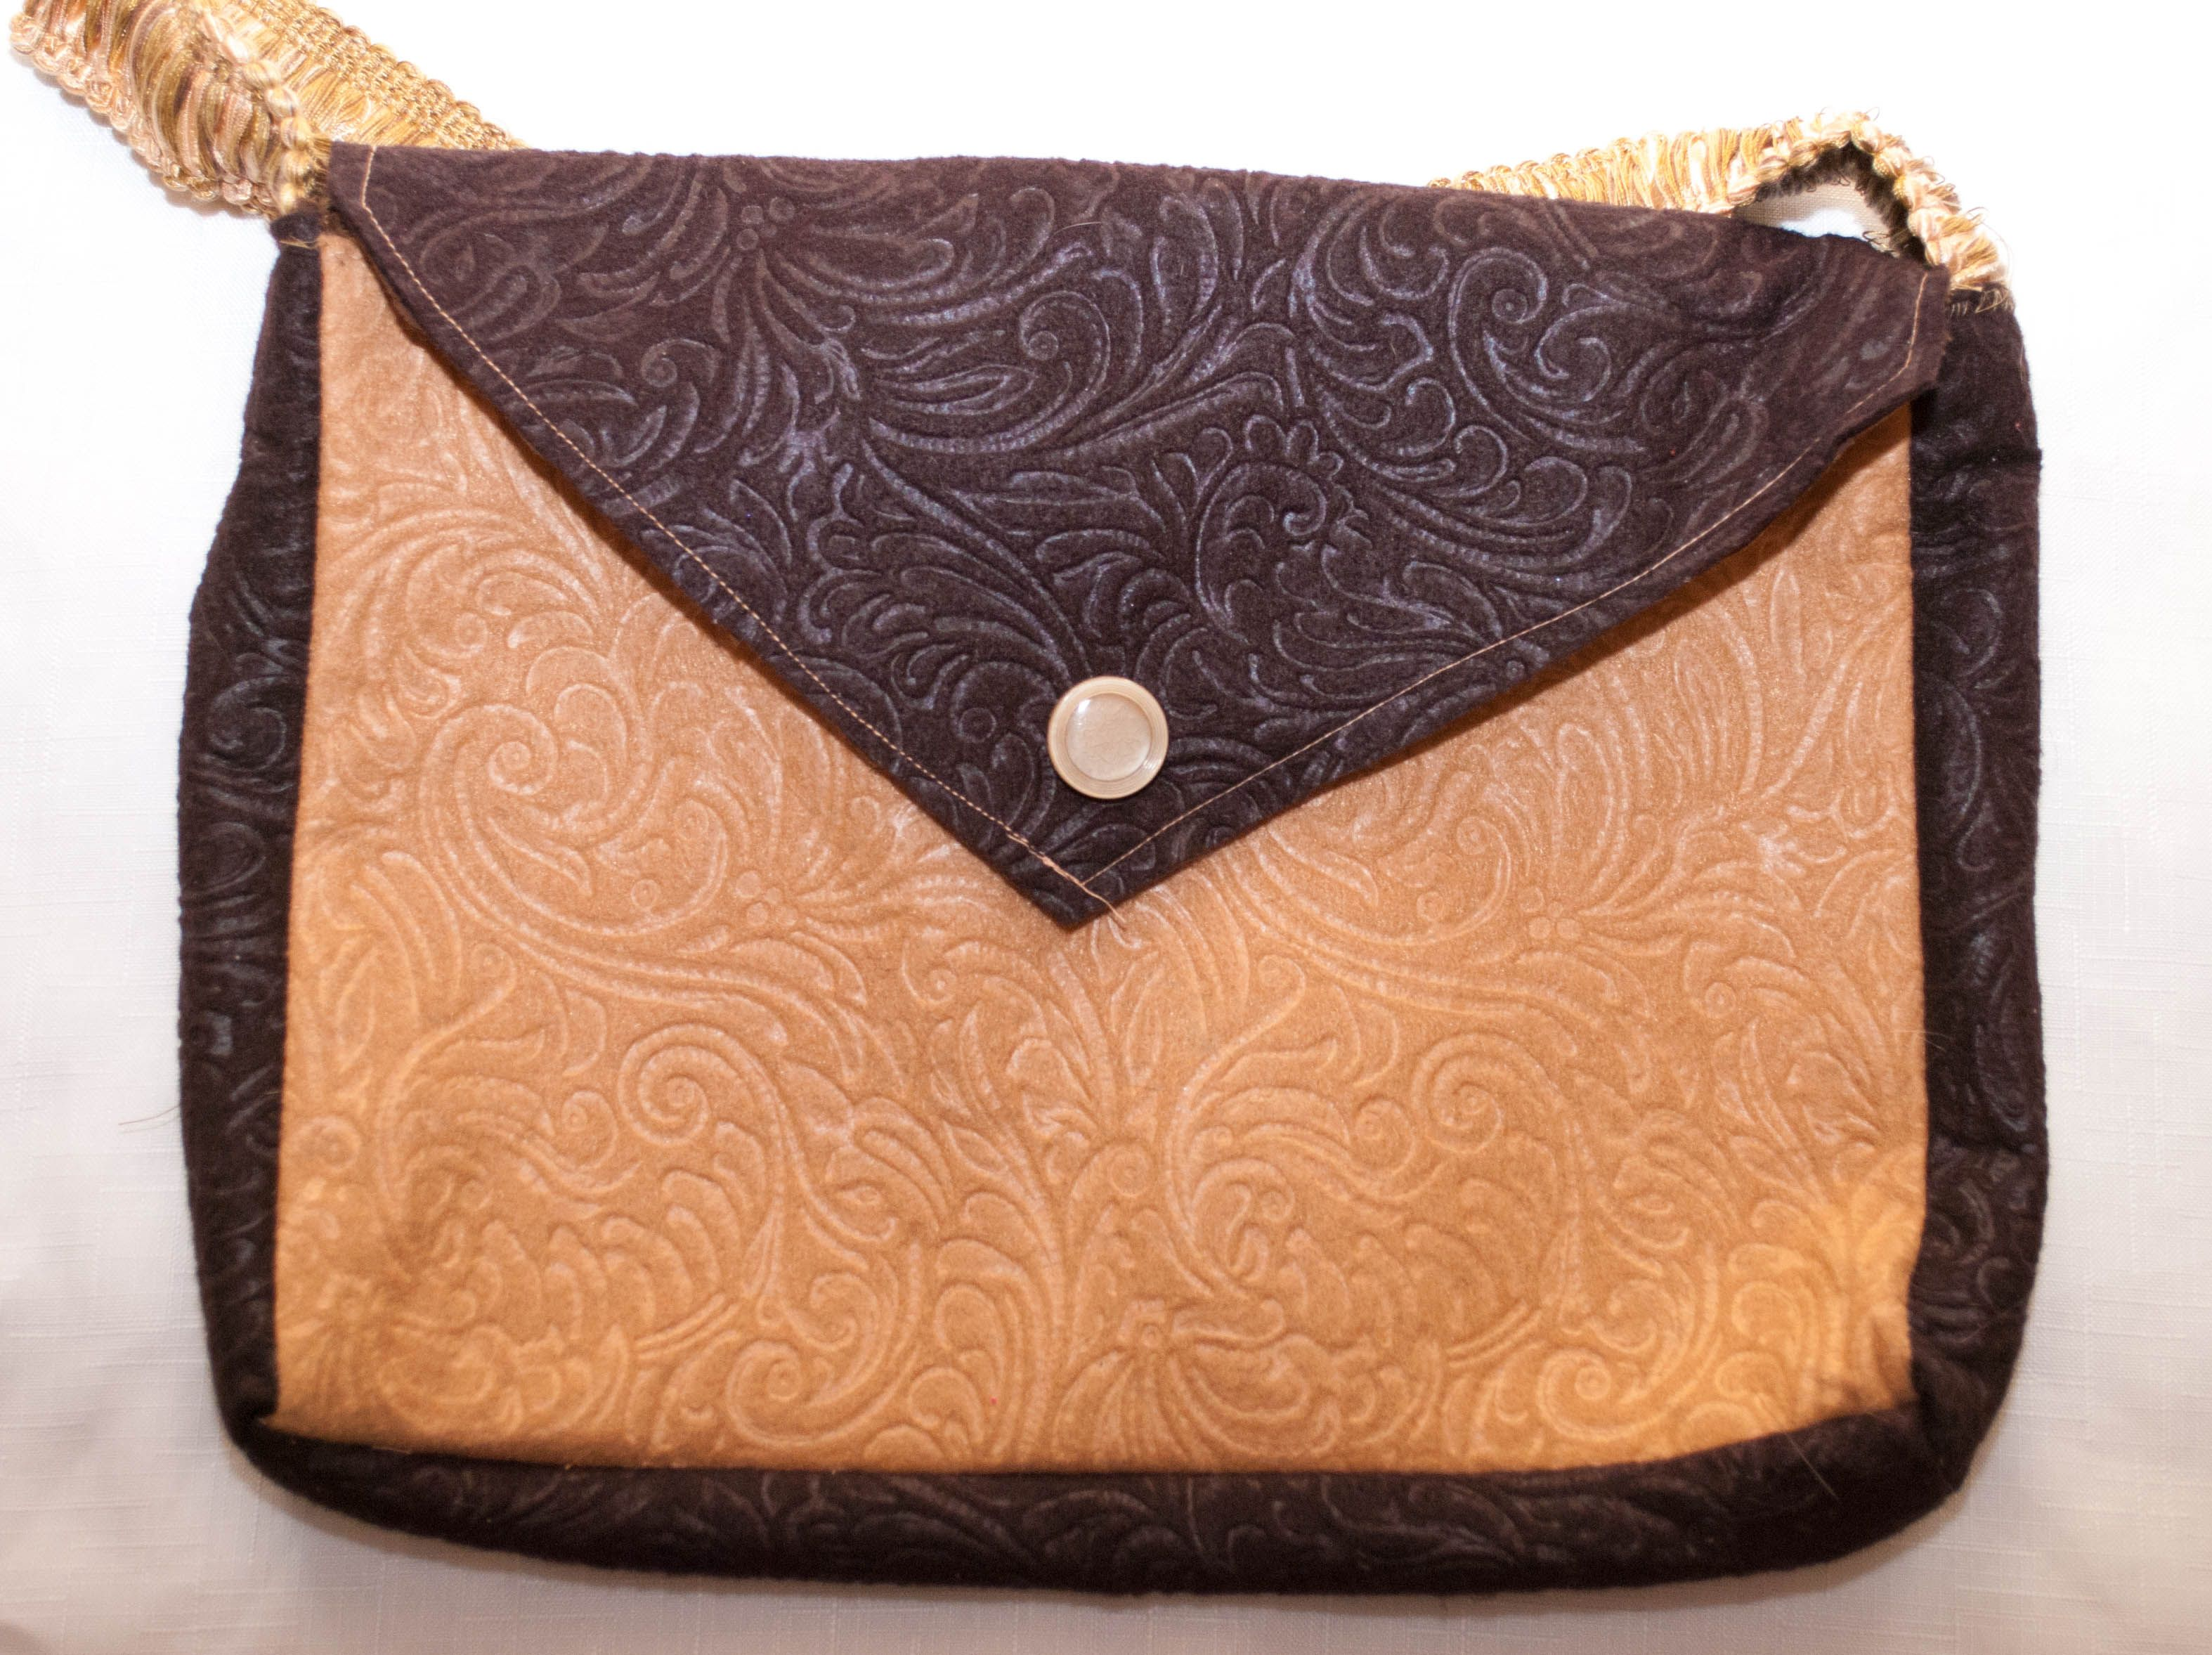 Beige and Brown felt bag - ideal size for iPads  Size 30cm x 24cm  Price £5 inc UK p  All bags are one of a kind  This bag is a sampler and therefore may have slight flaws  susietuesdays@gmail.com